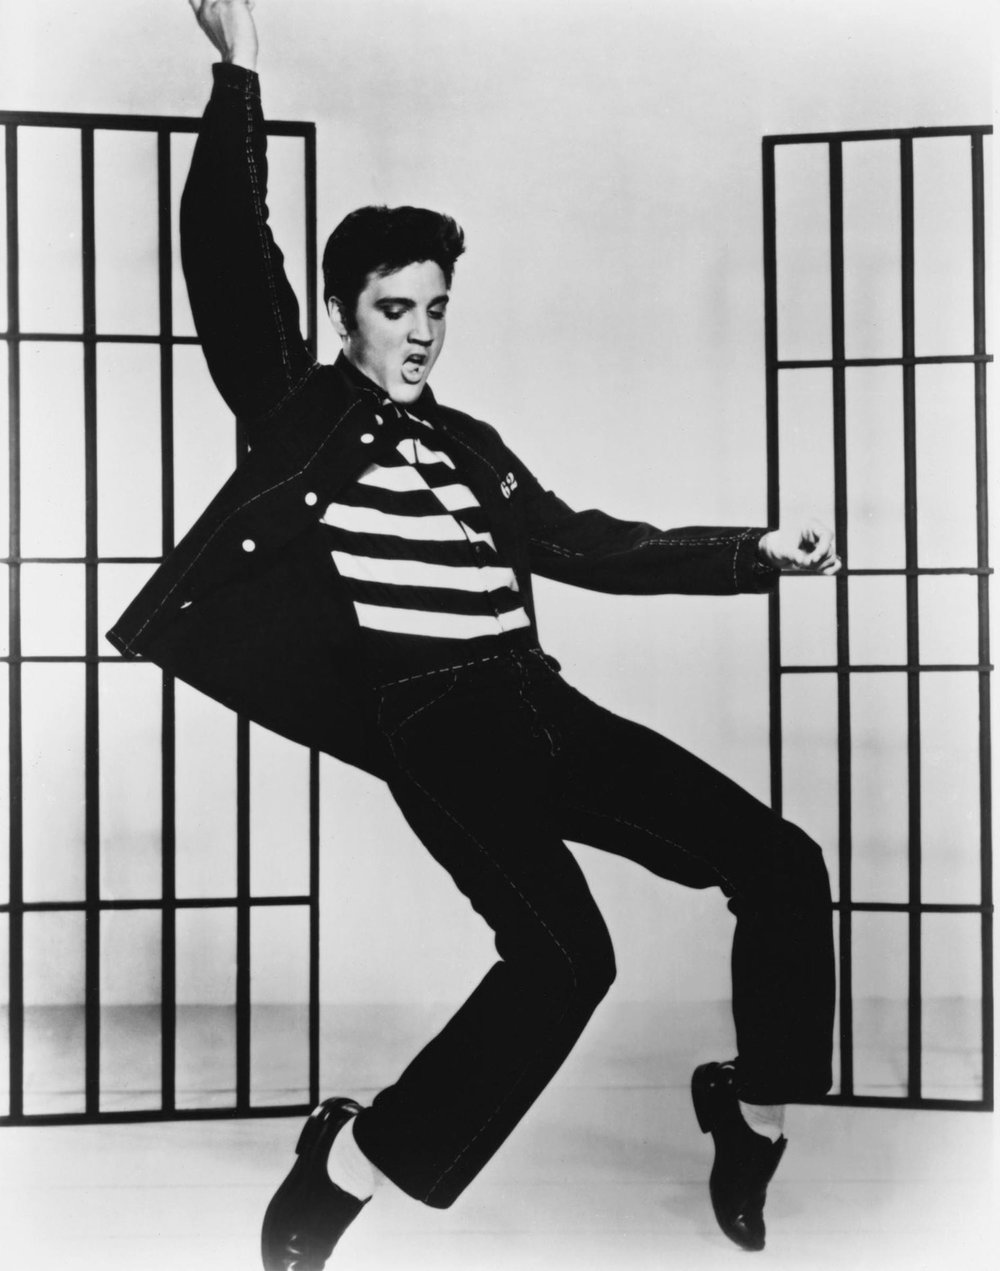 His music - and his hips - shook up everything